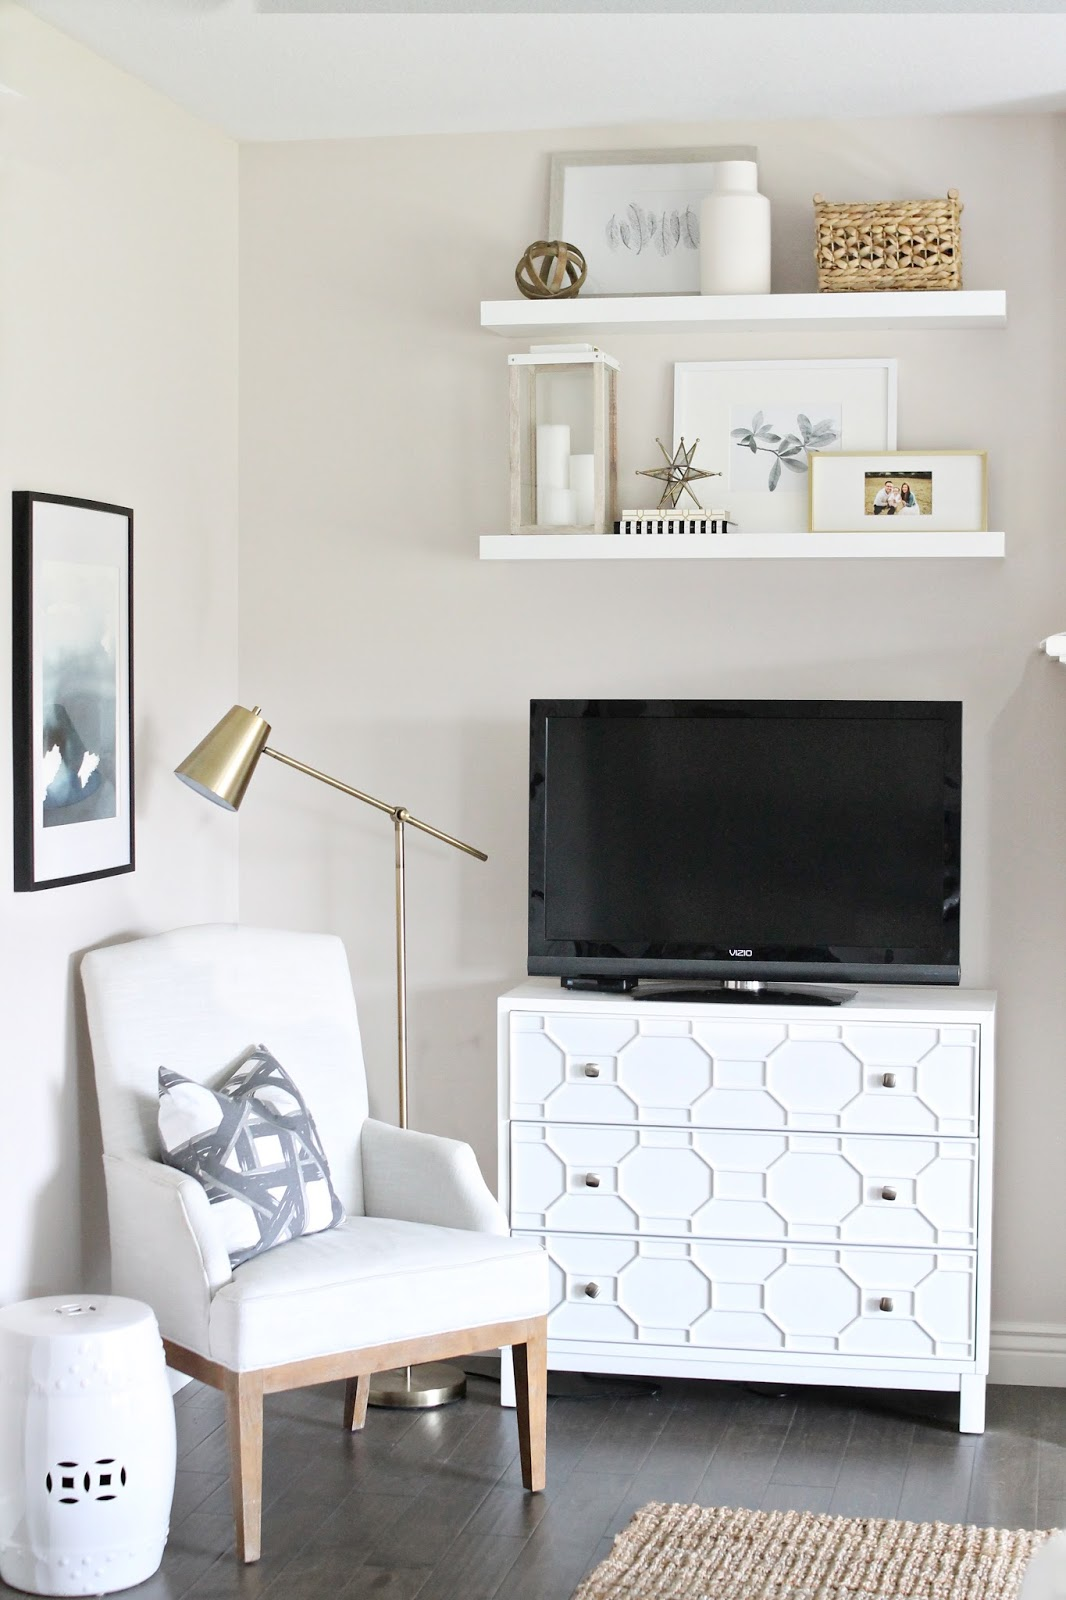 12th and White: Living Room Reveal {How to Fake Built-In Shelving}